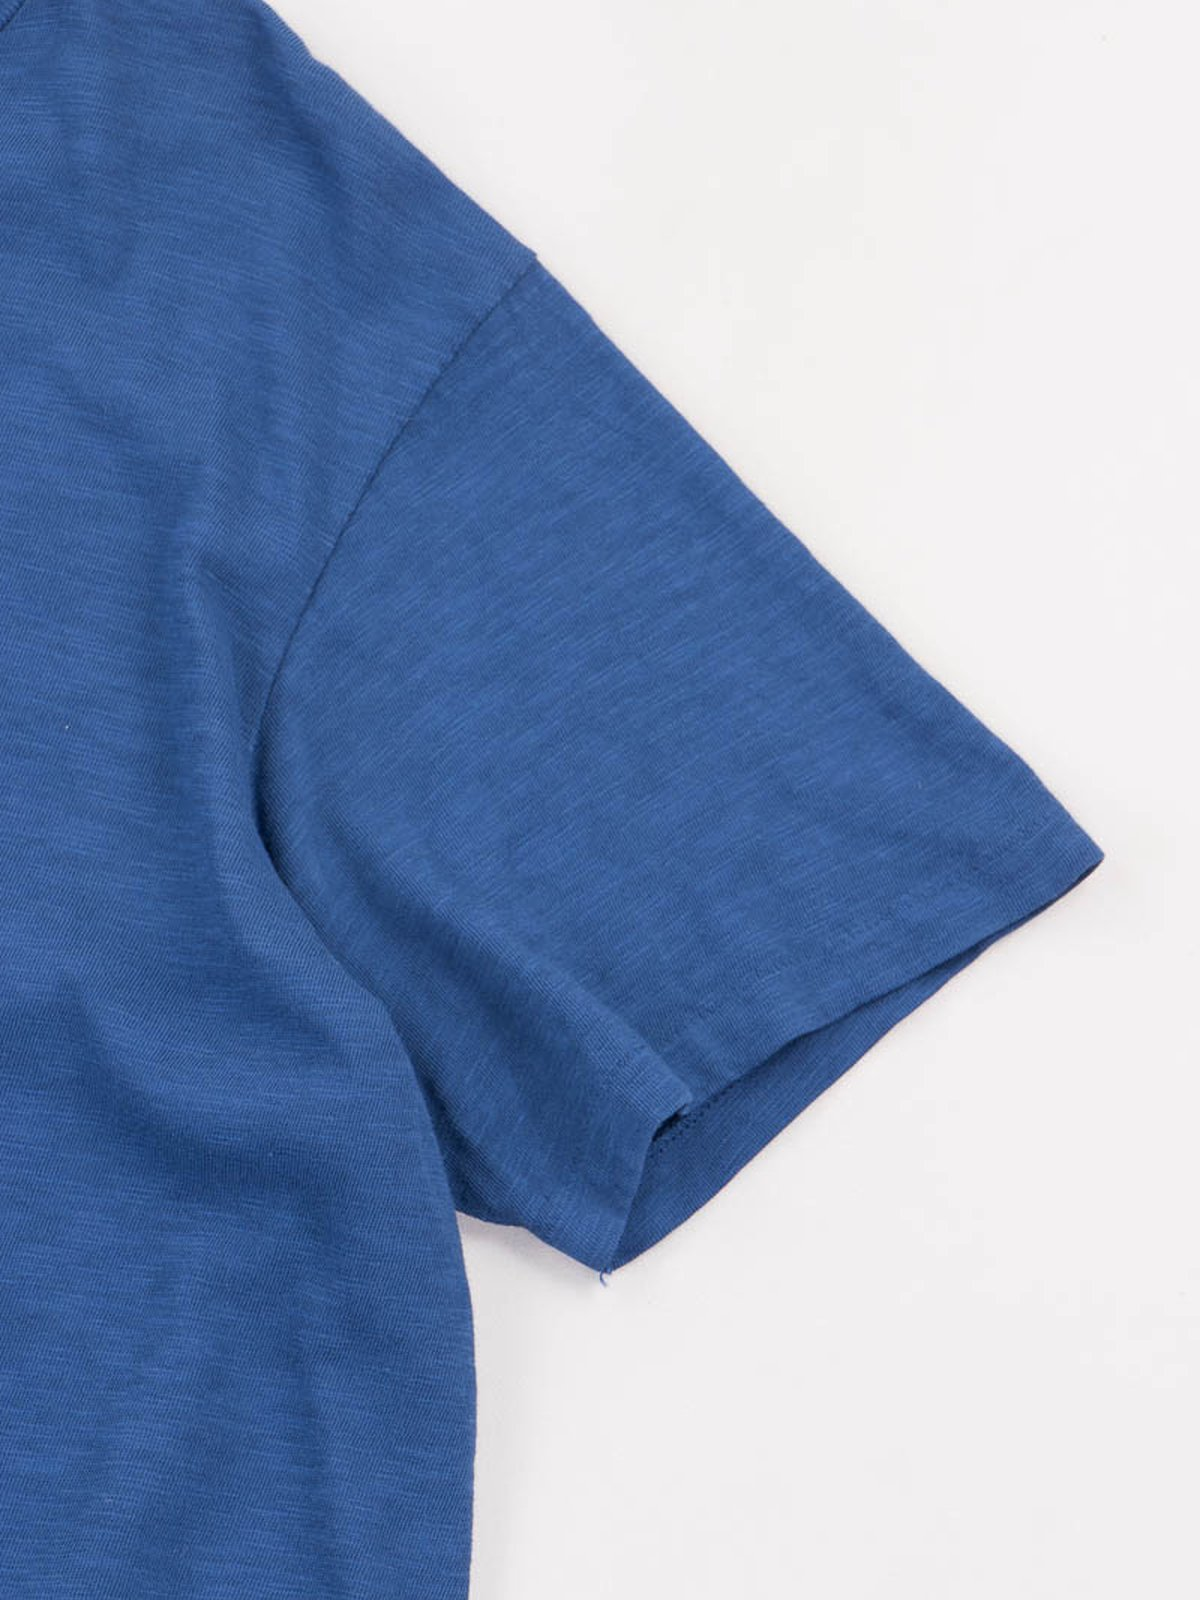 Blue Rolled Regular Tee - Image 4